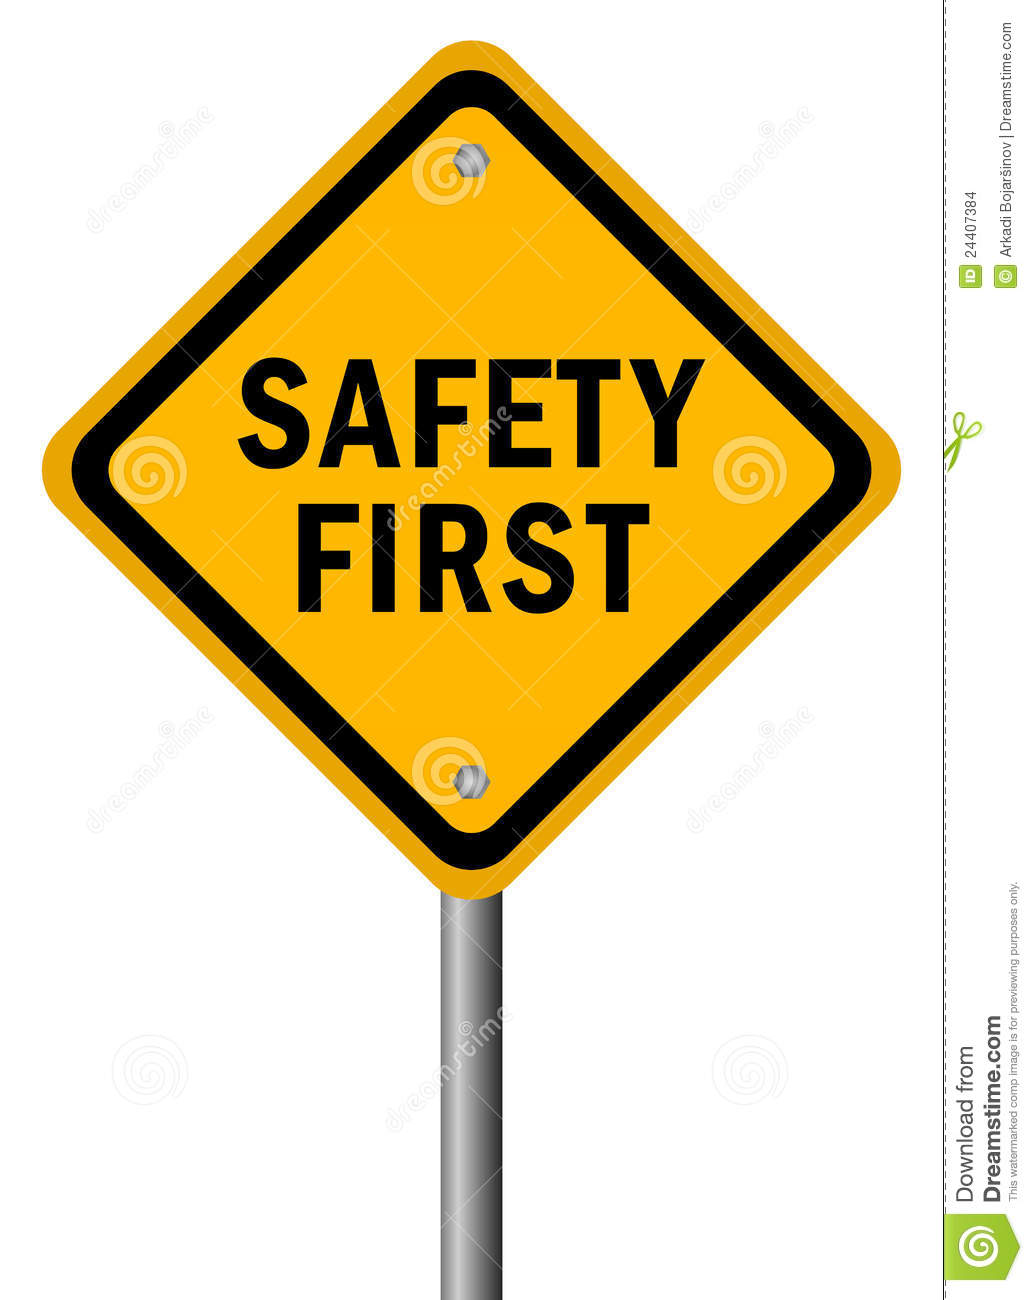 Safety First Clipart Safety .-Safety First Clipart Safety .-15